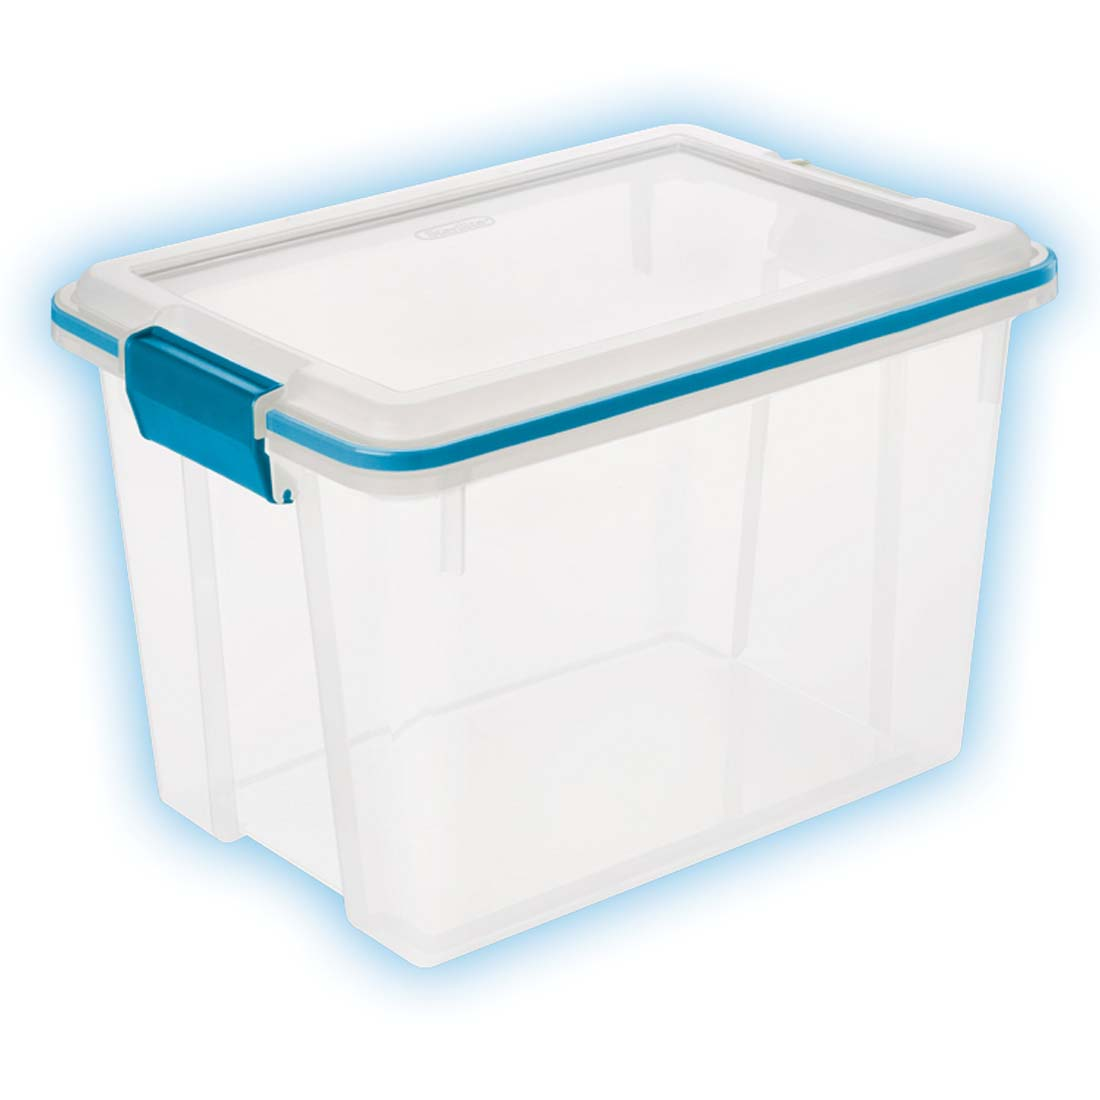 View STERILITE STORAGE BOX 16 X 11.25 10.75 INCH 20 QUART WITH LOCKING LID ** MADE IN USA **